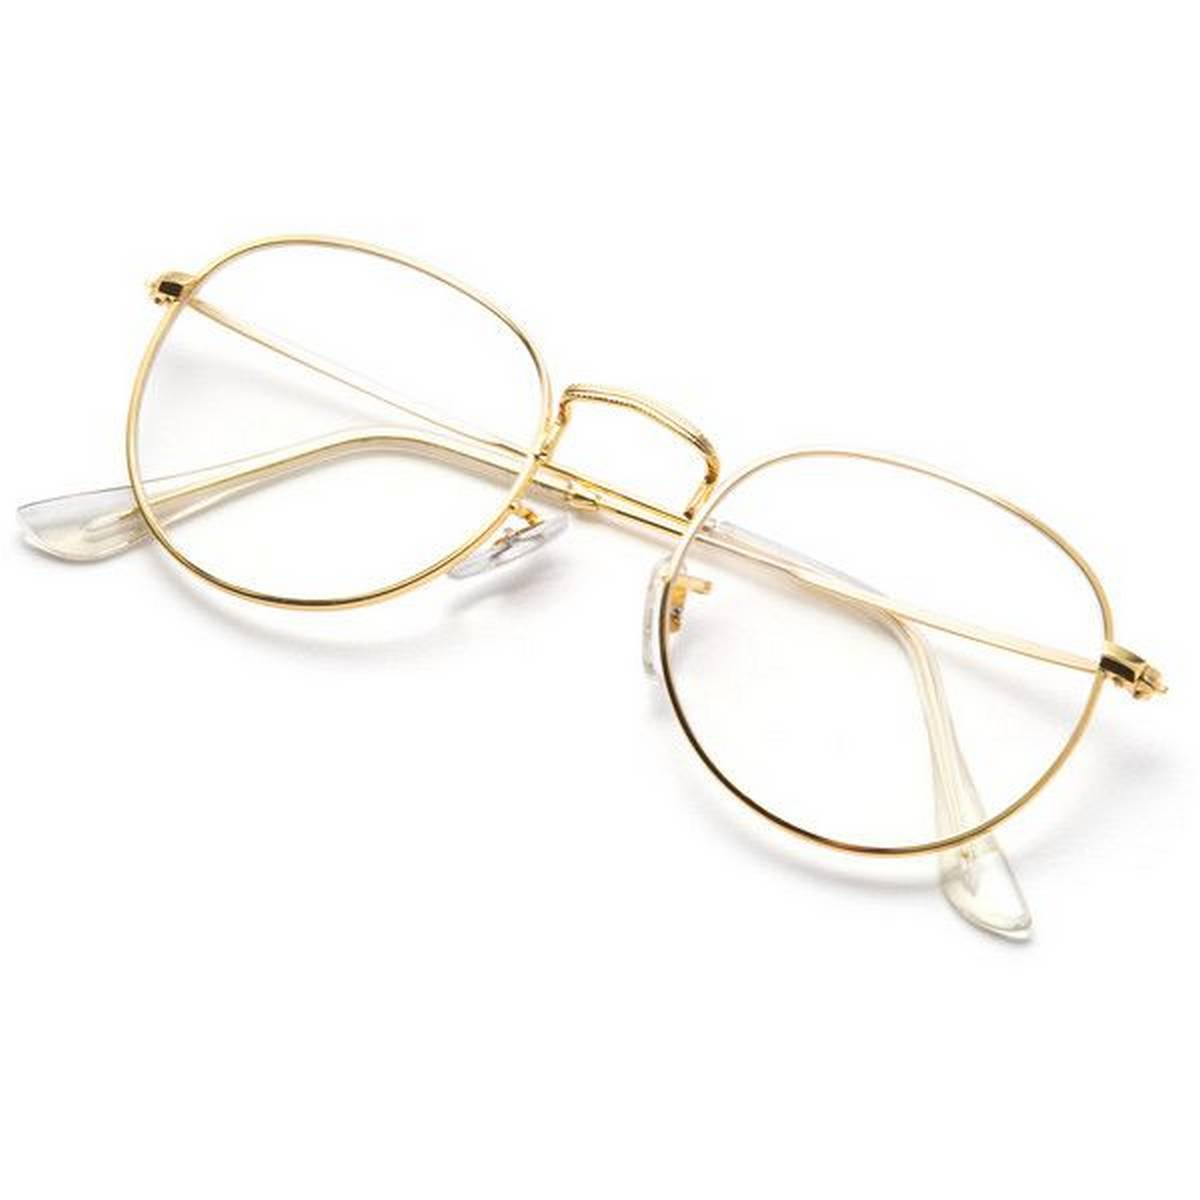 Best Quality New Design Half Round Transparent Stylish Glasses with Golden Frame For Men/Women